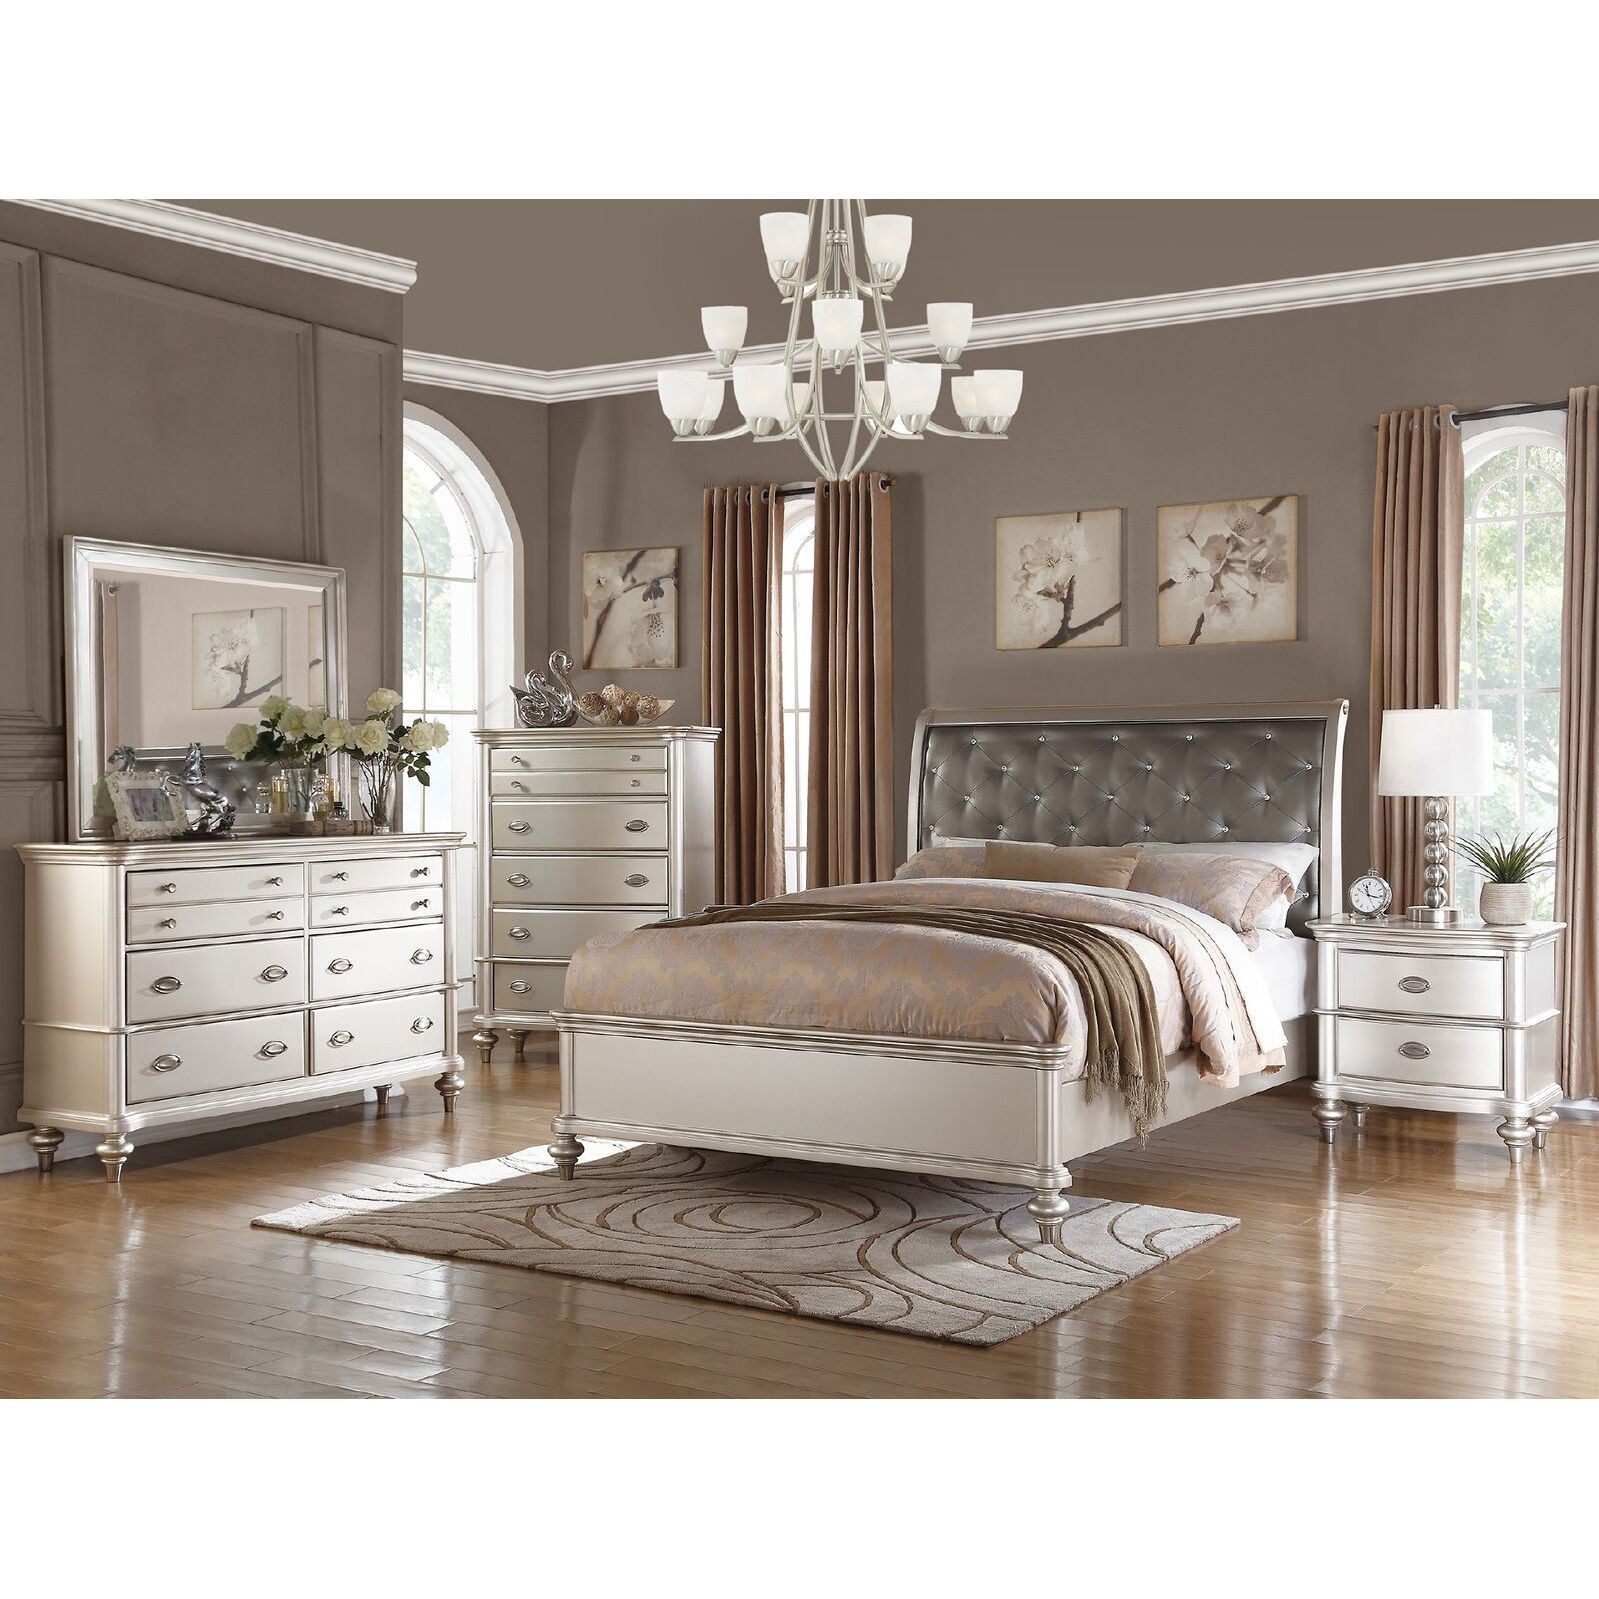 Saveria 6-piece Silver Bedroom Furniture Set - Free Shipping Today -  Overstock.com - 19671925 Interior Bedroom Ideas ookie1.com